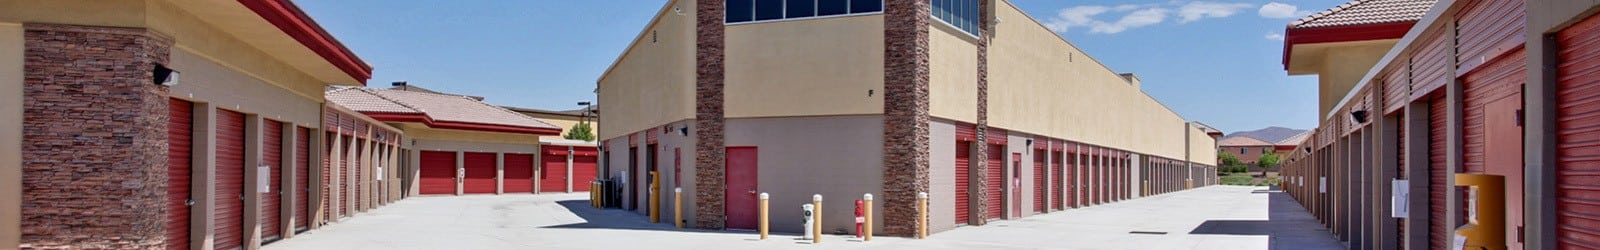 Accessibility statement at Butterfield Ranch Self Storage in Temecula, California